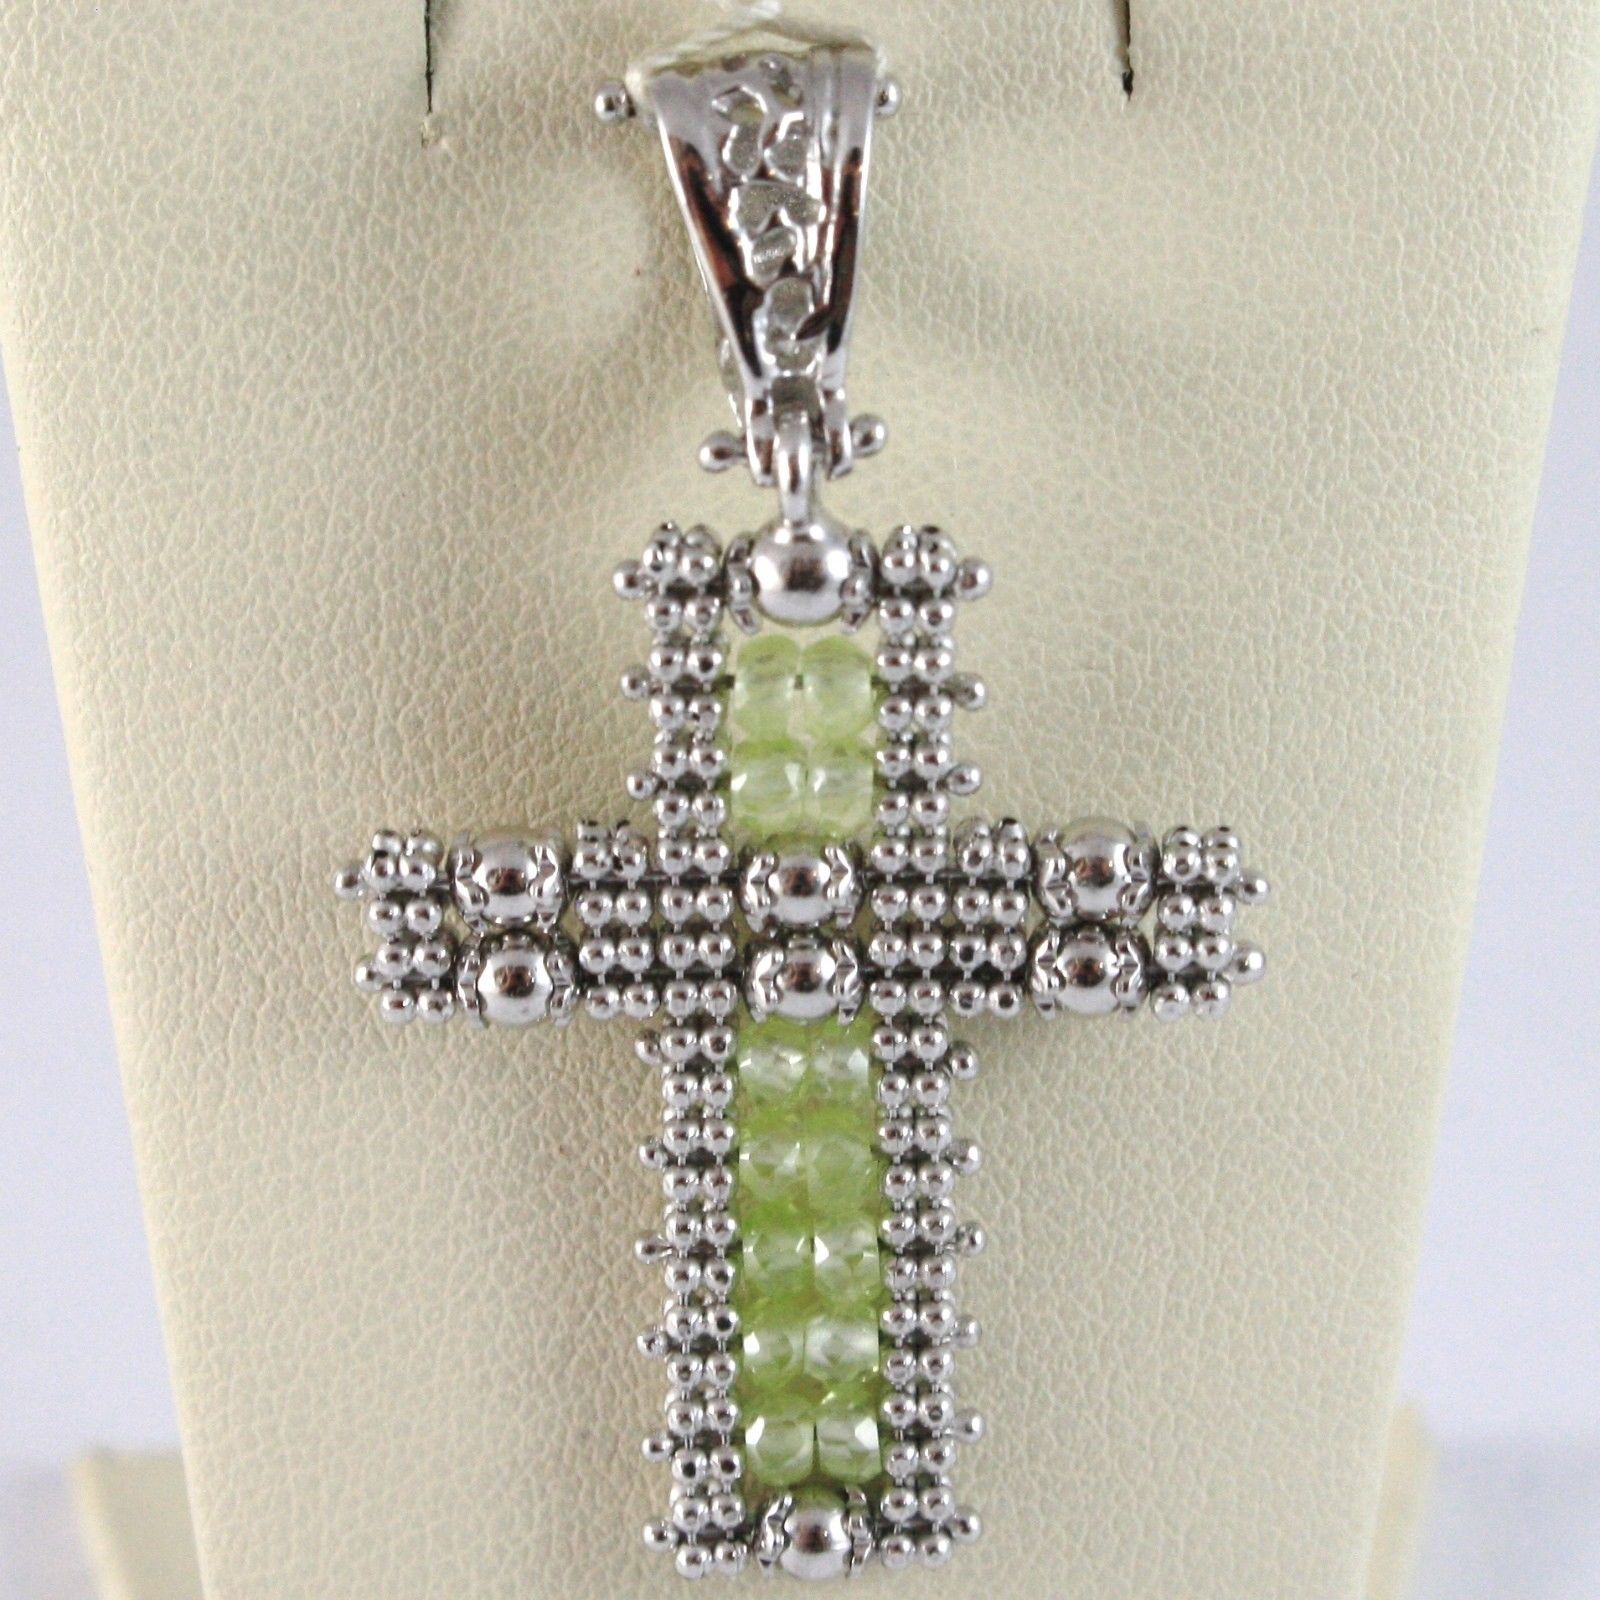 CHARM PENDANT 925 SILVER, CROSS FINELY WORKED SOFT, SPHERES, PERIDOT